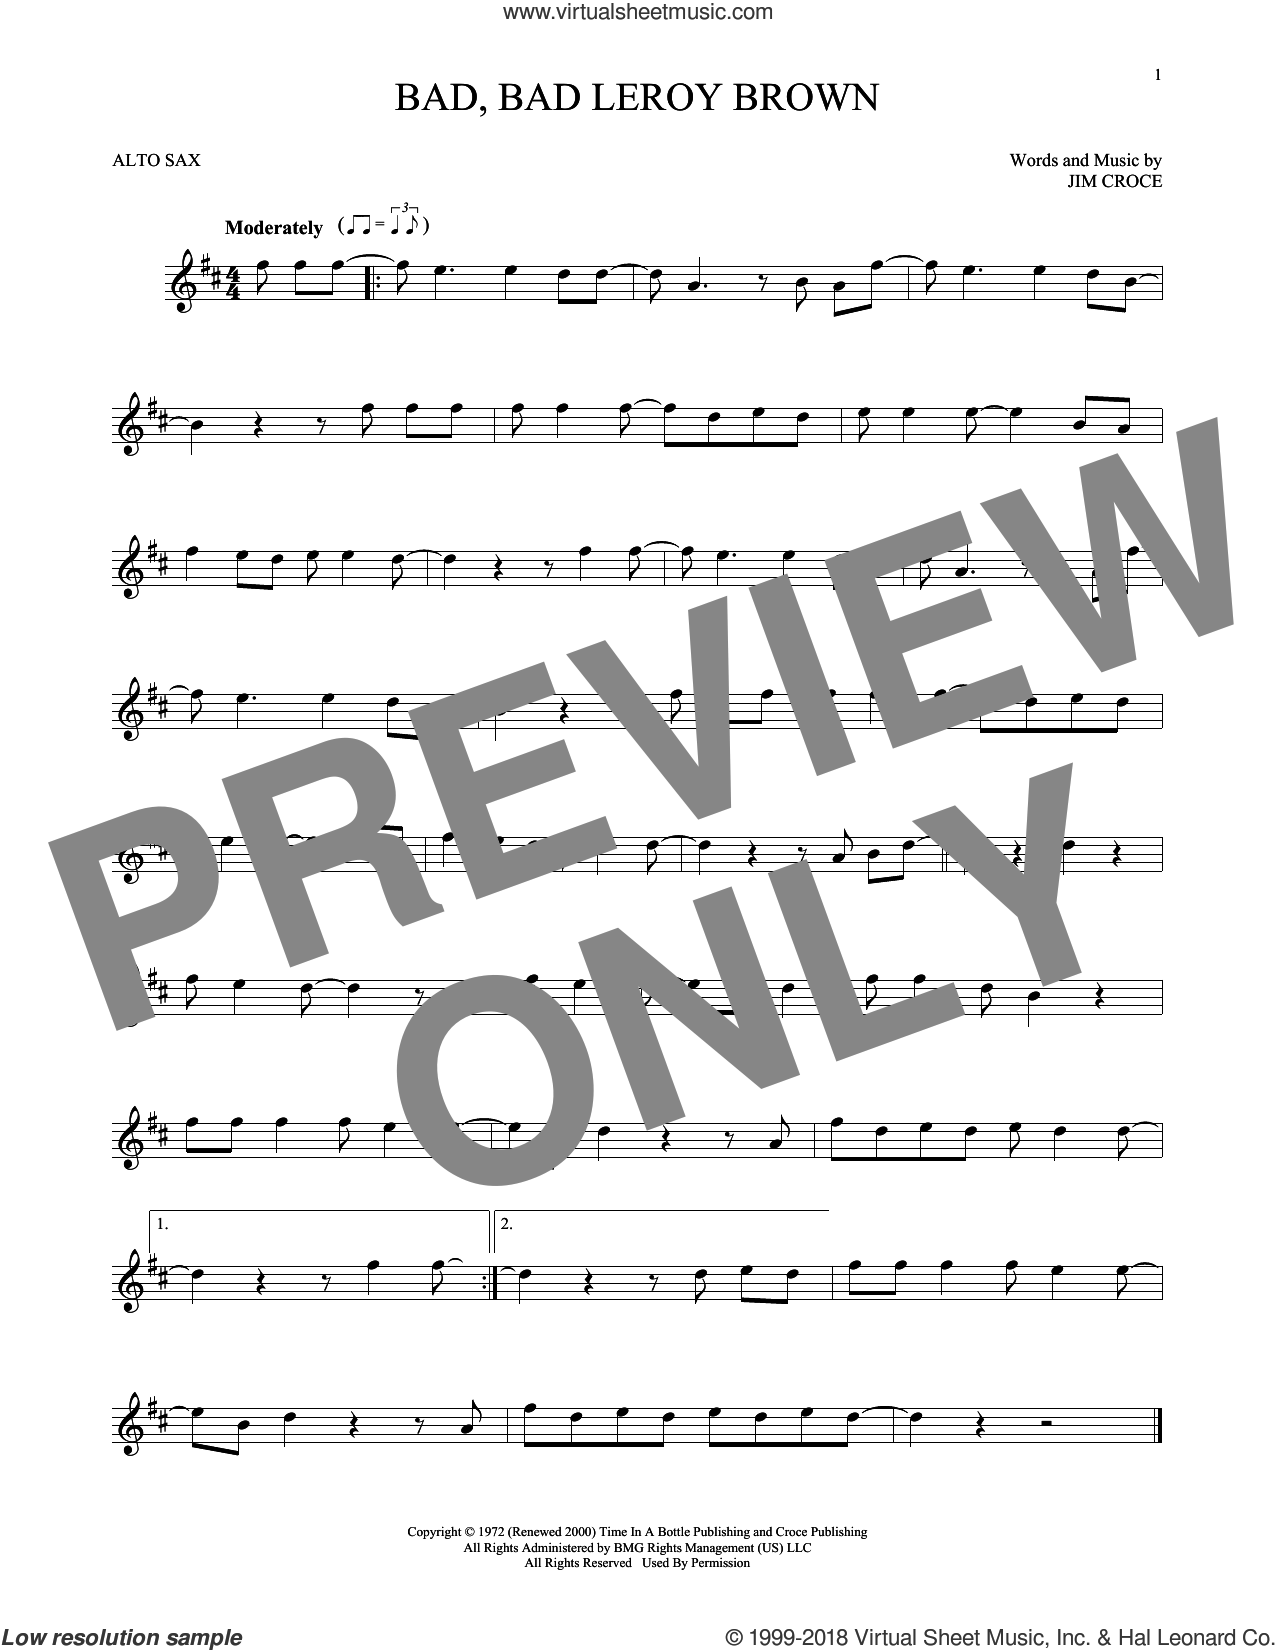 Bad, Bad Leroy Brown sheet music for alto saxophone solo by Jim Croce, intermediate skill level